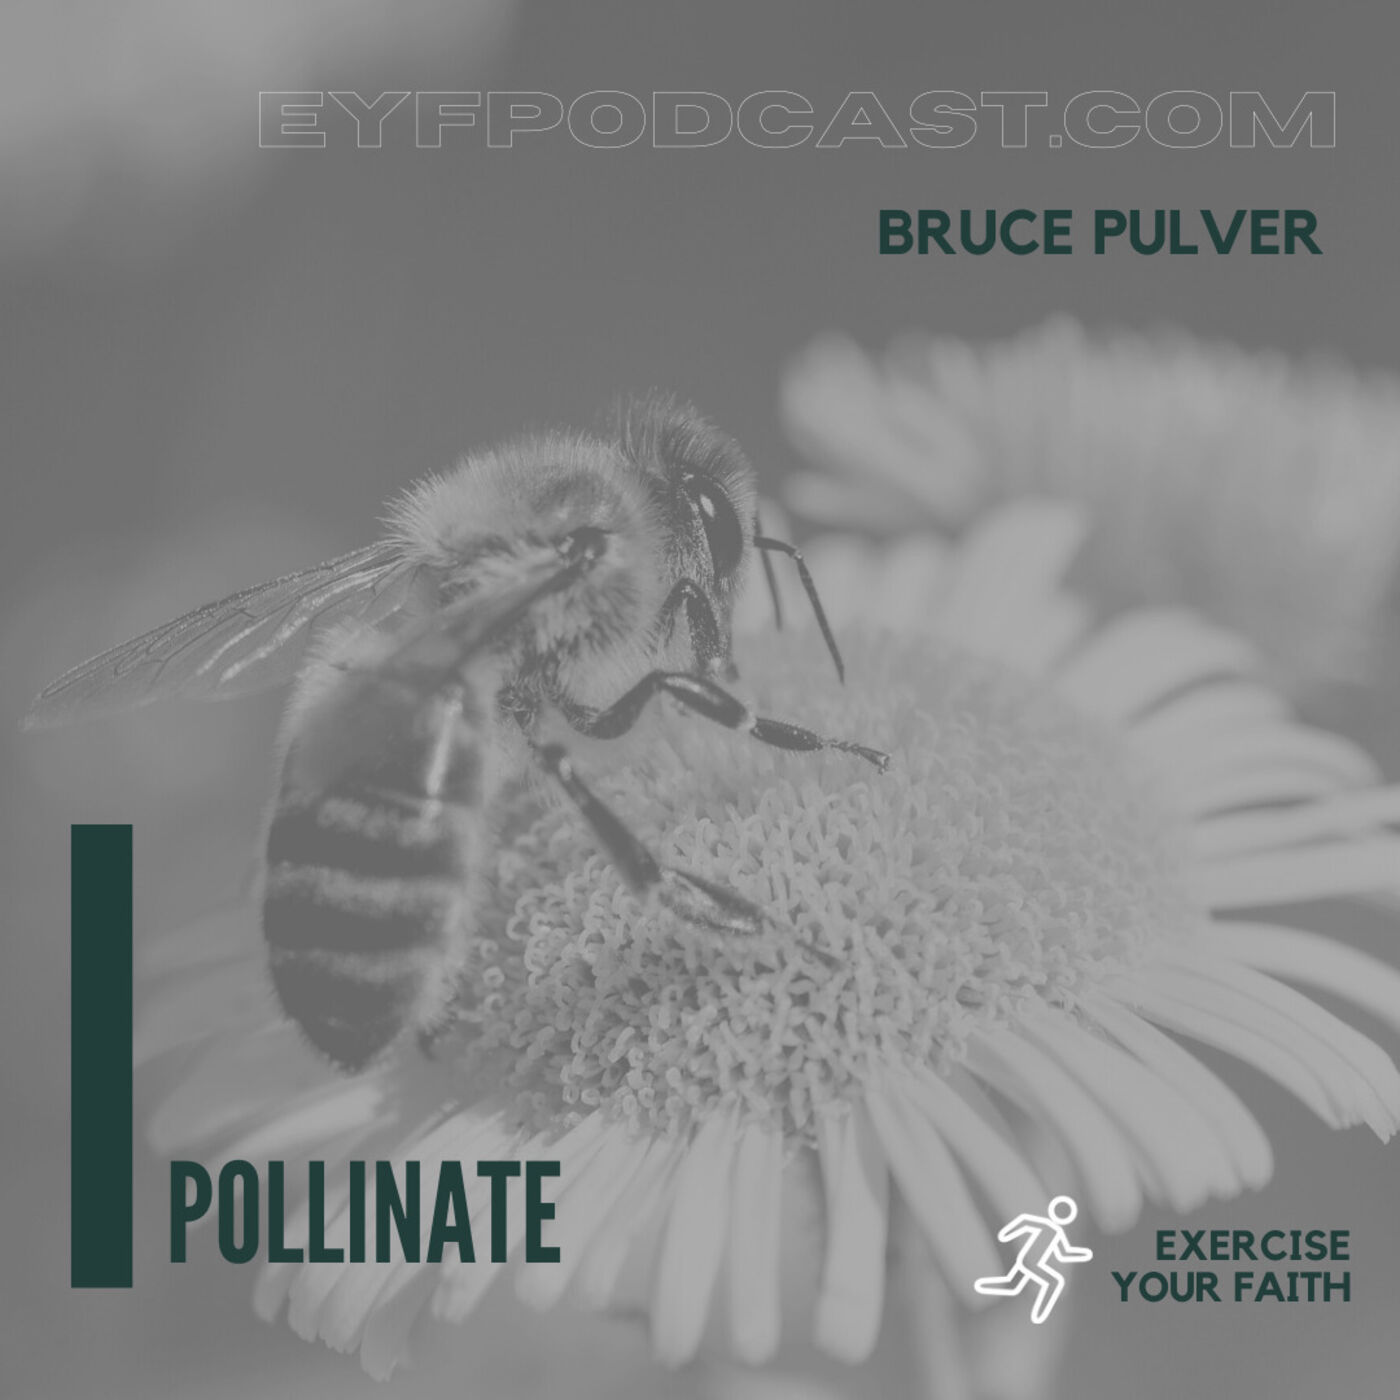 EYFPodcast- Exercise your faith and POLLINATE for Christ with Bruce Pulver